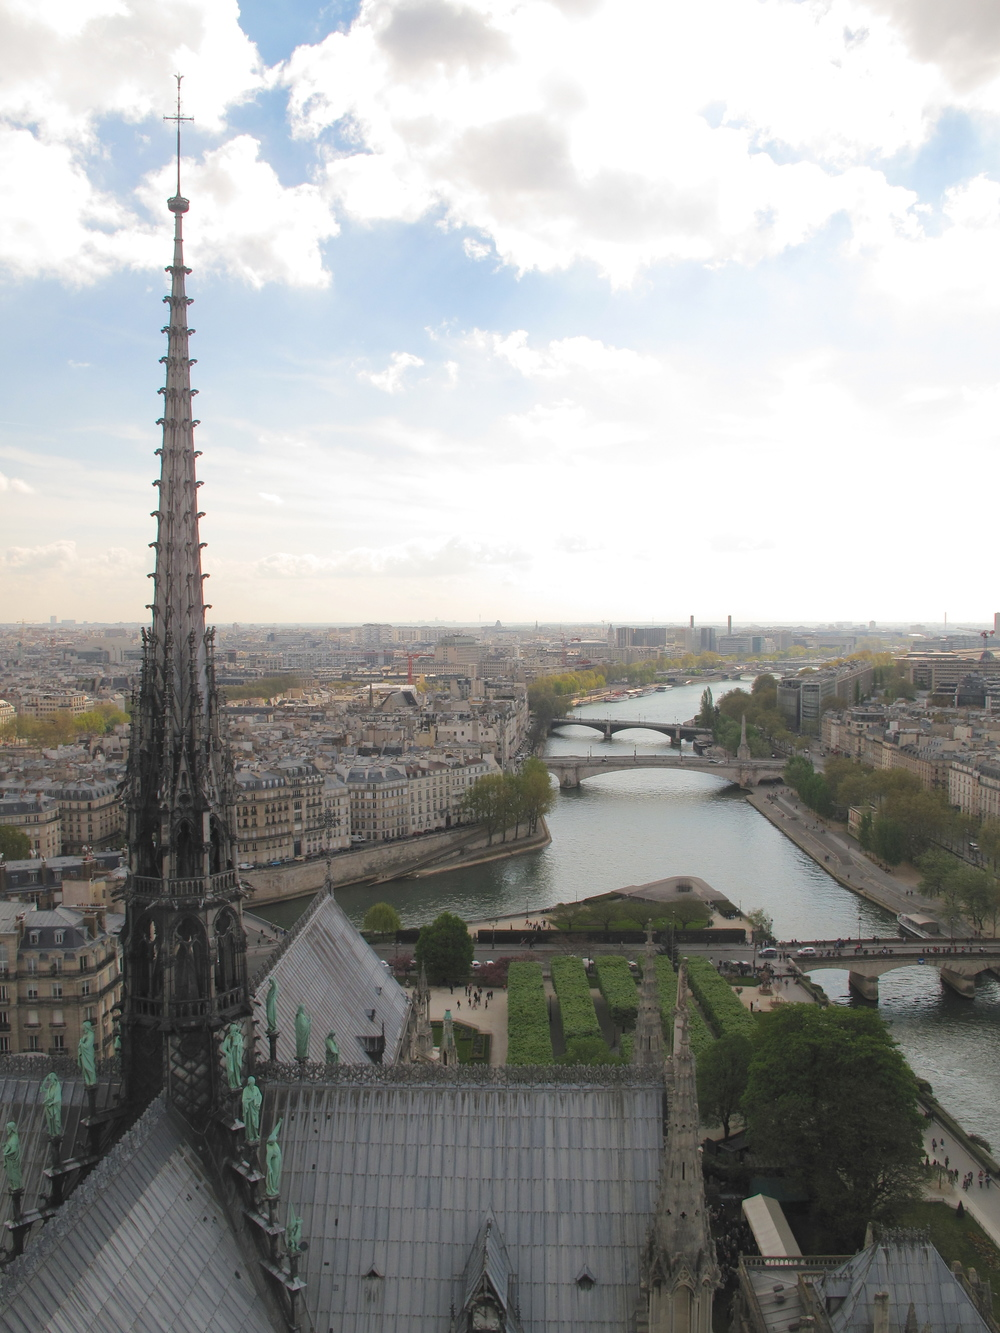 The view of Paris from the top of Notre Dame - towards the Seine and the Îles